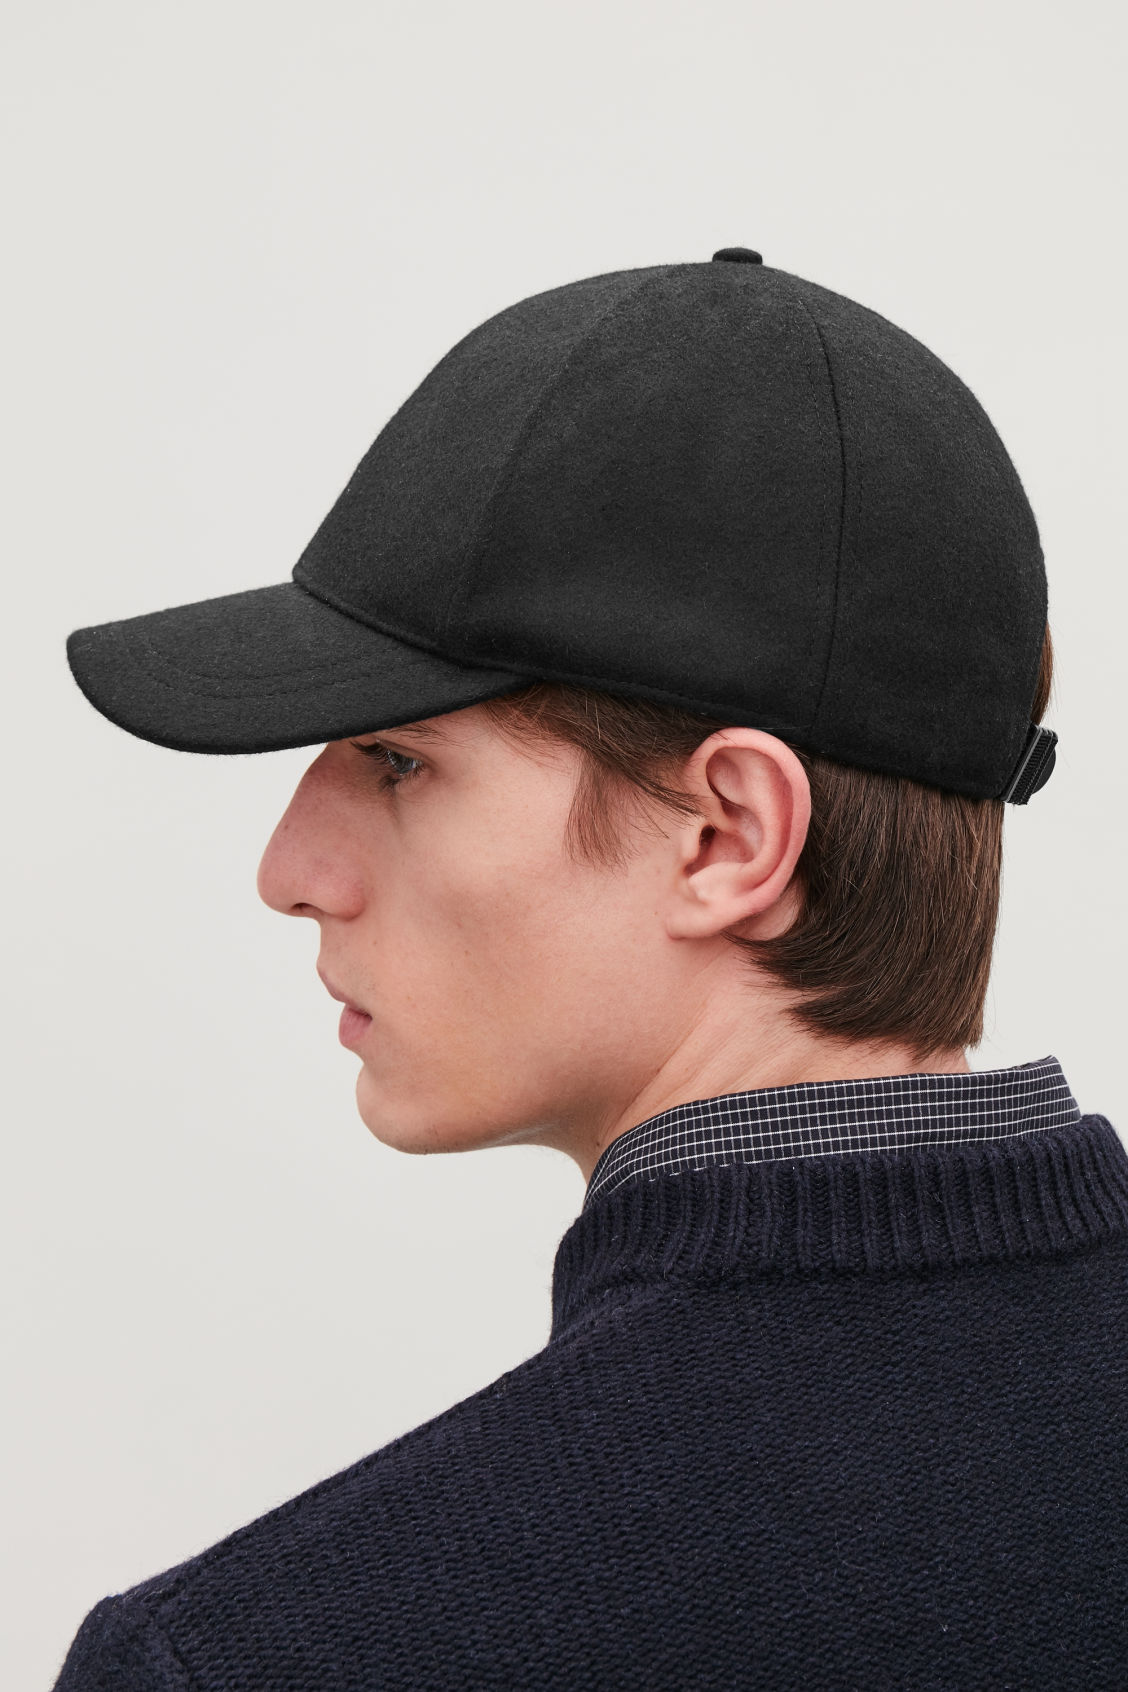 88ae600d3a4 Detailed image of Cos wool baseball cap in black